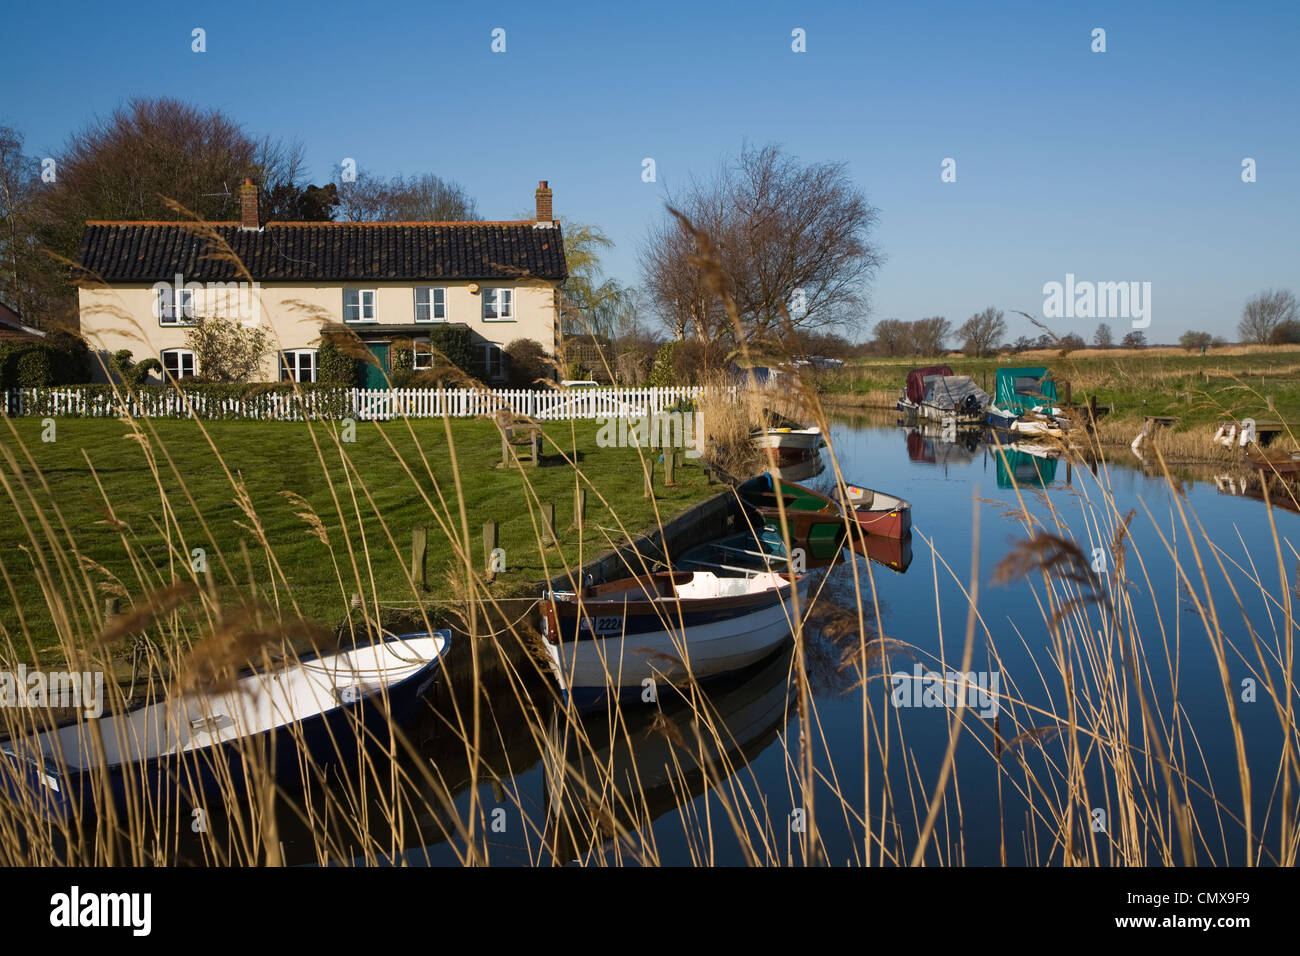 Norfolk Broads landscape at West Somerton, Norfolk, England - Stock Image